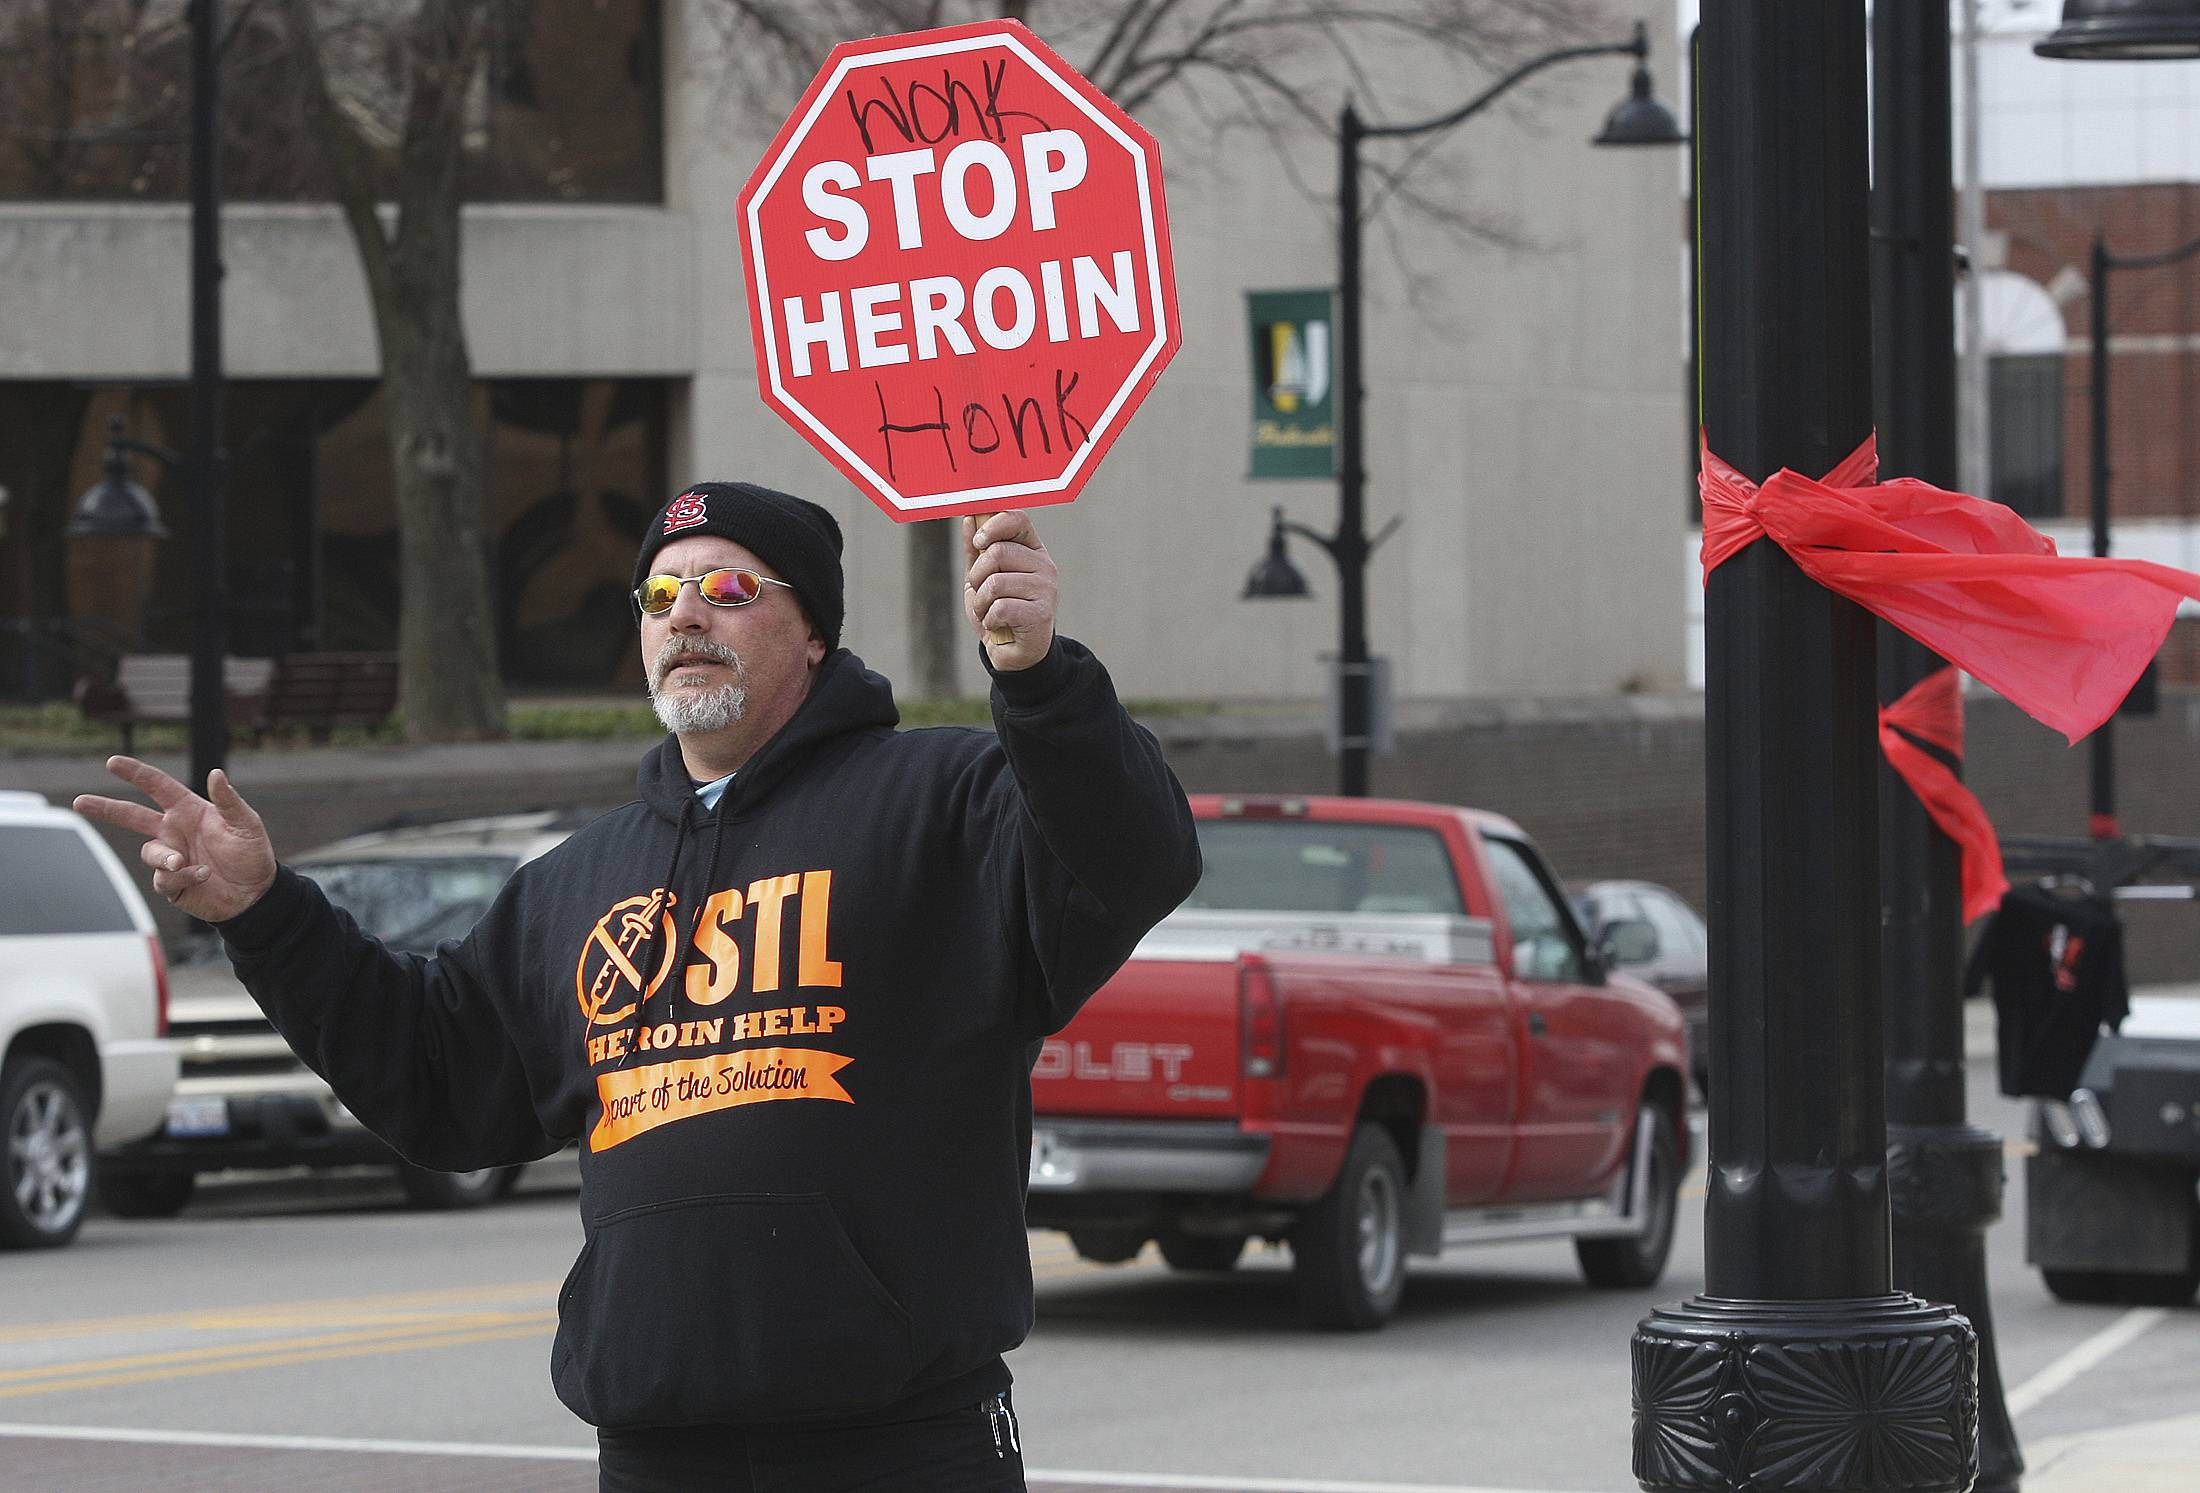 Surging heroin deaths across Ill. draw alarm, ire